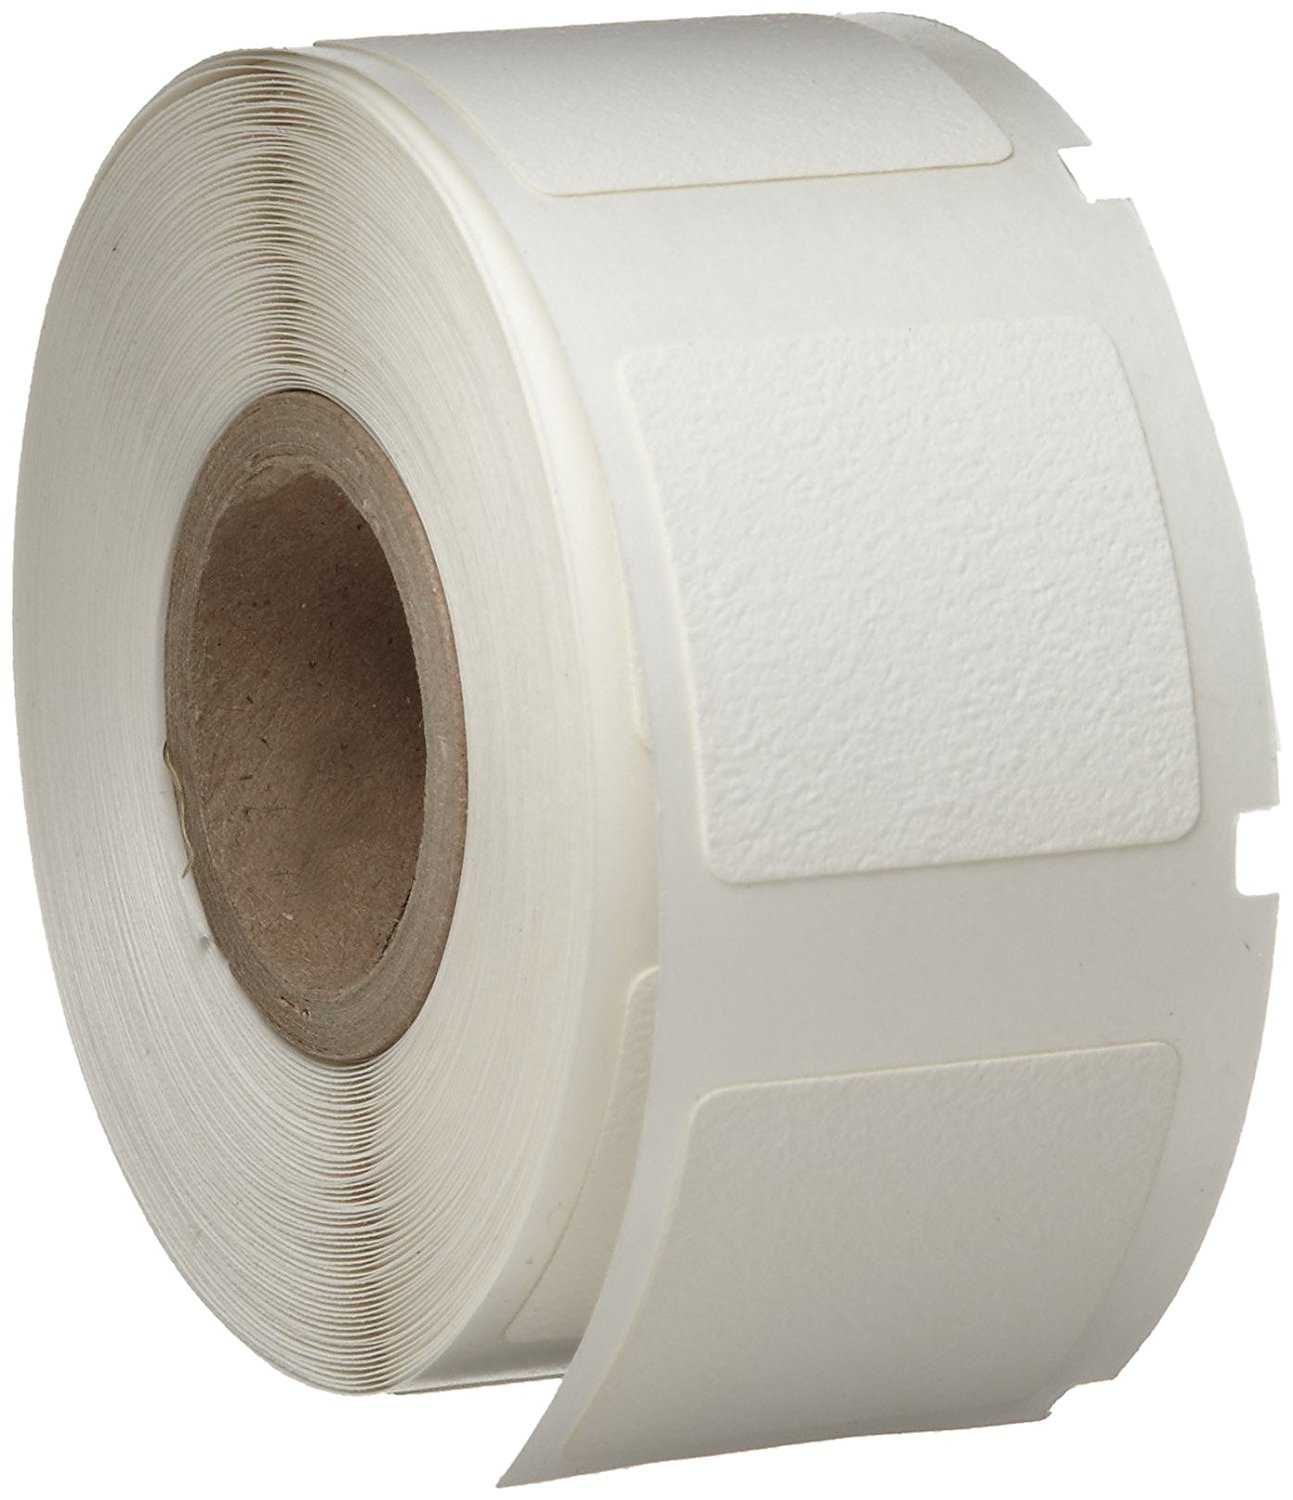 "Brady WML-711-502 I.D. PRO Plus LS2000 And BradyMarker 1"" Height, 1"" Width, B-502 Repositionable Vinyl Cloth White Color XC Plus Printer Labels (250 Per Roll)"